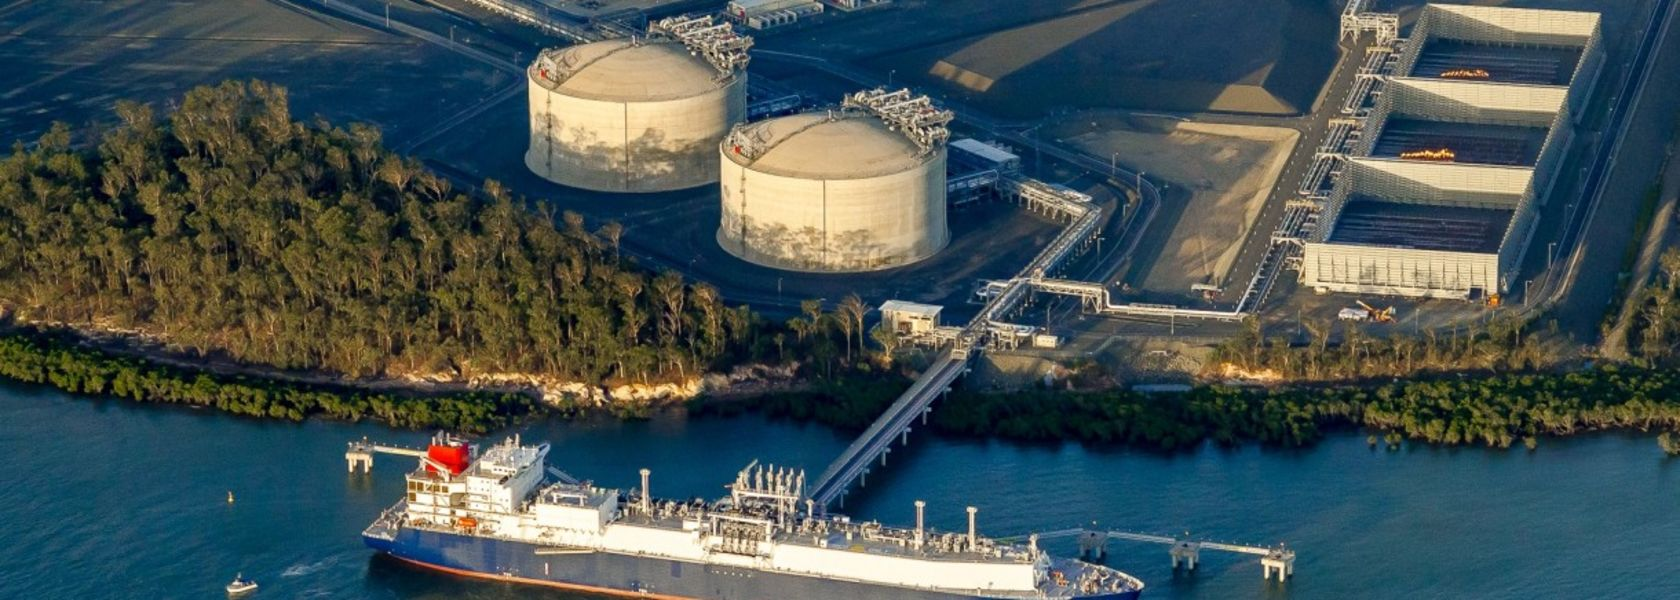 APLNG delivers strong profits for Origin